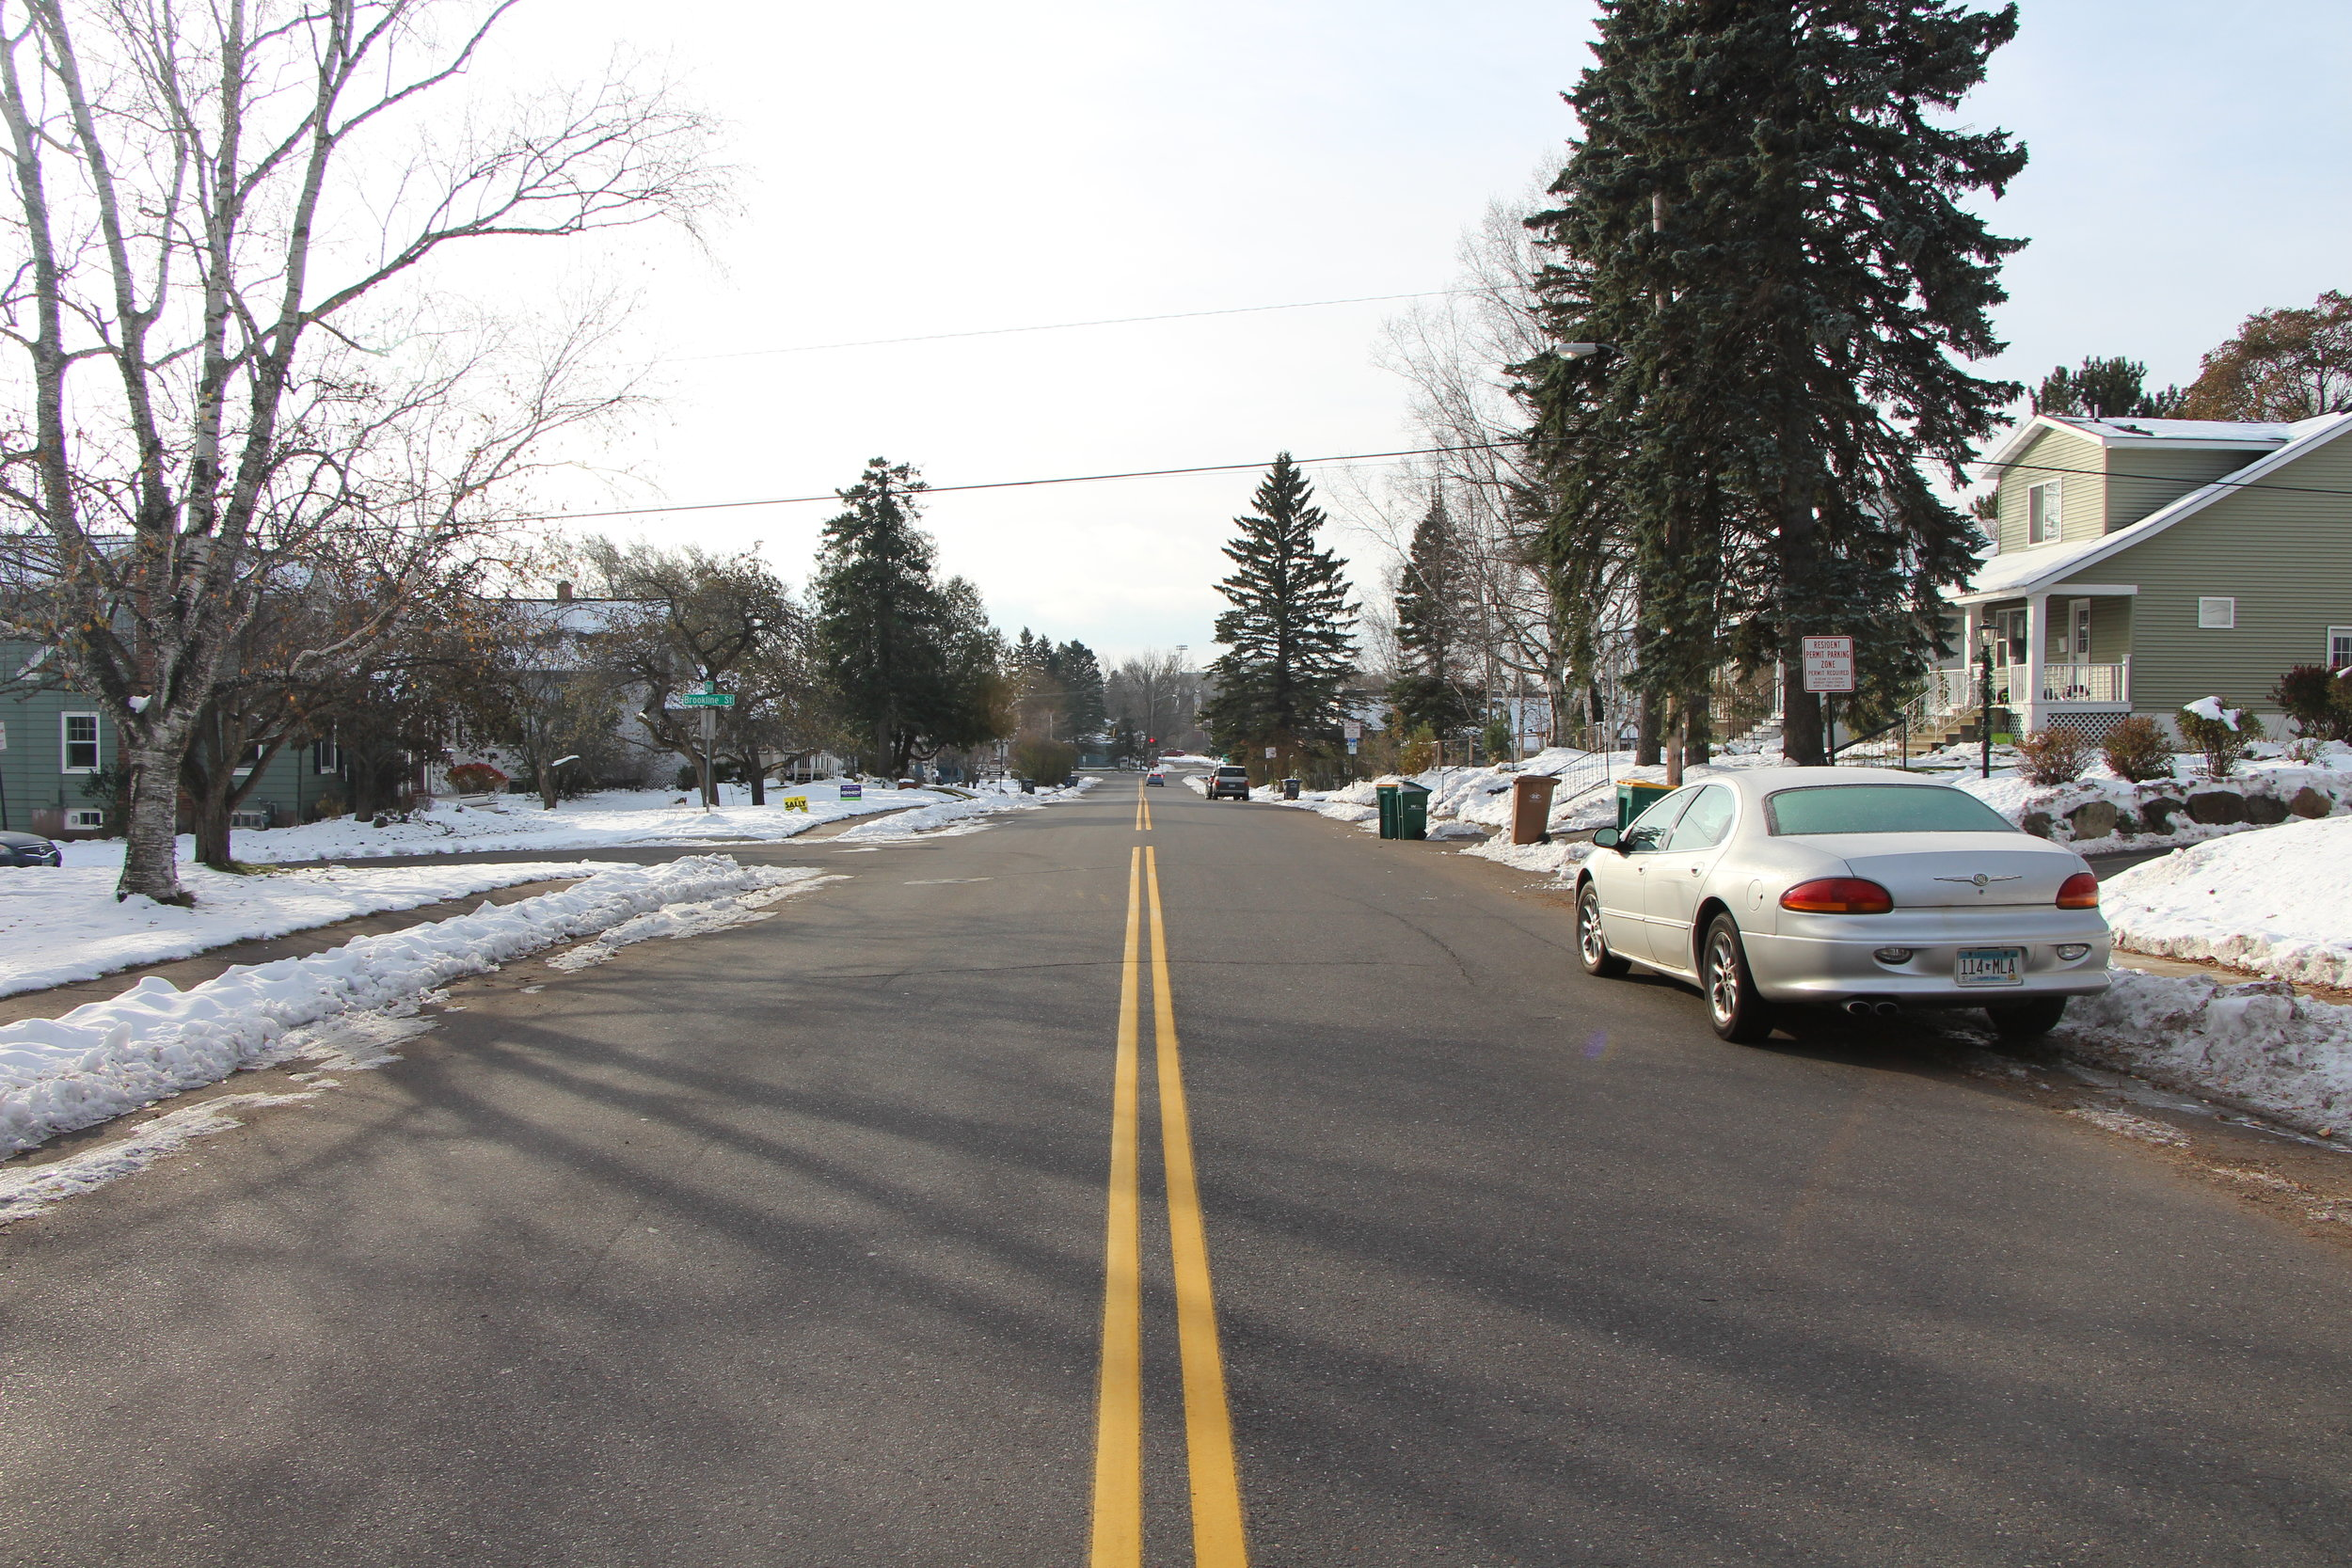 Carver Ave.is lined by various student rental properties mixed with residential homeowners. Photo courtesy of Conor Shea